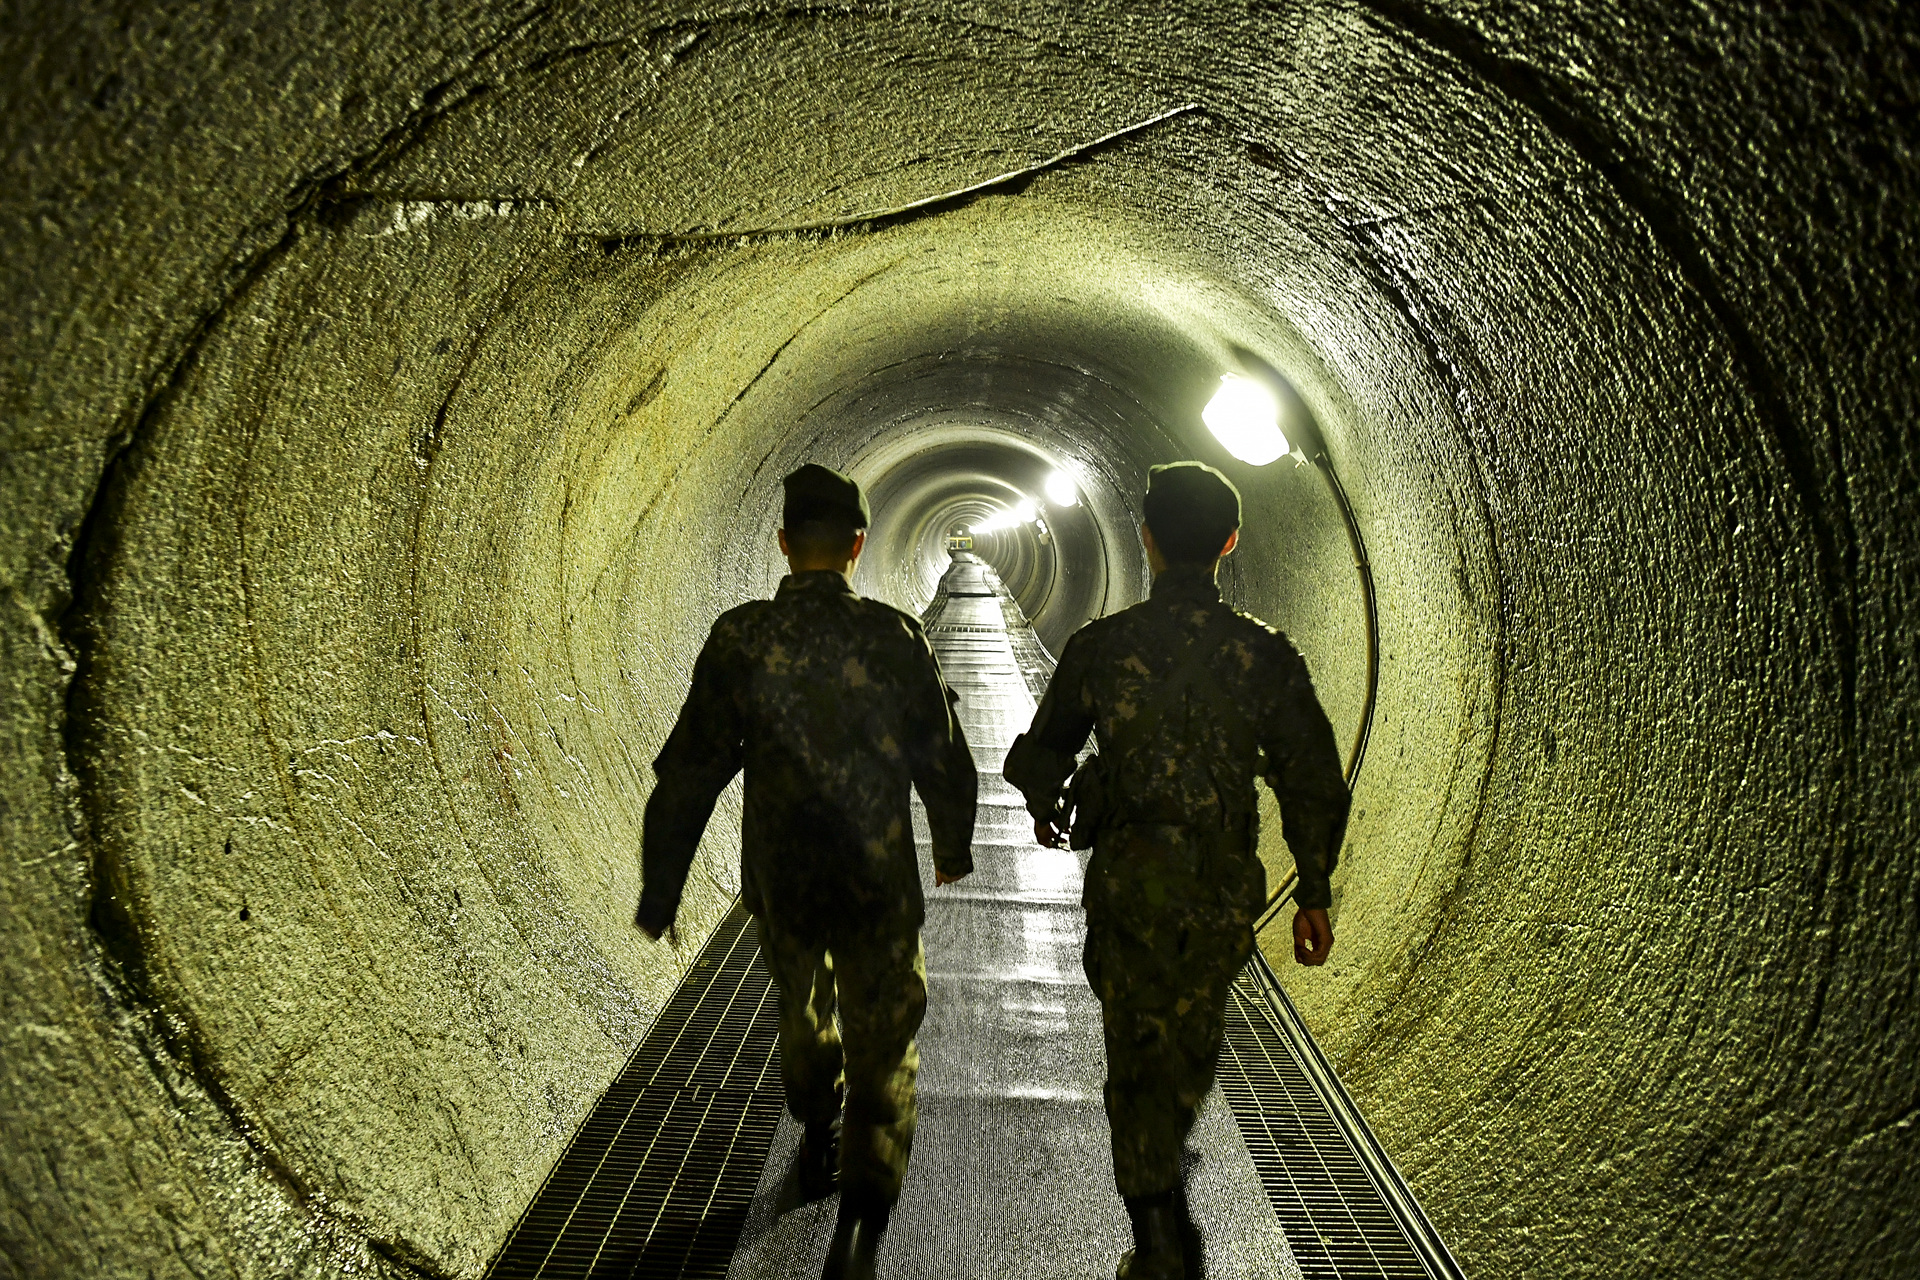 Two South Korean soldiers walk along the long counter tunnel connecting to the North Korean infiltration tunnel.